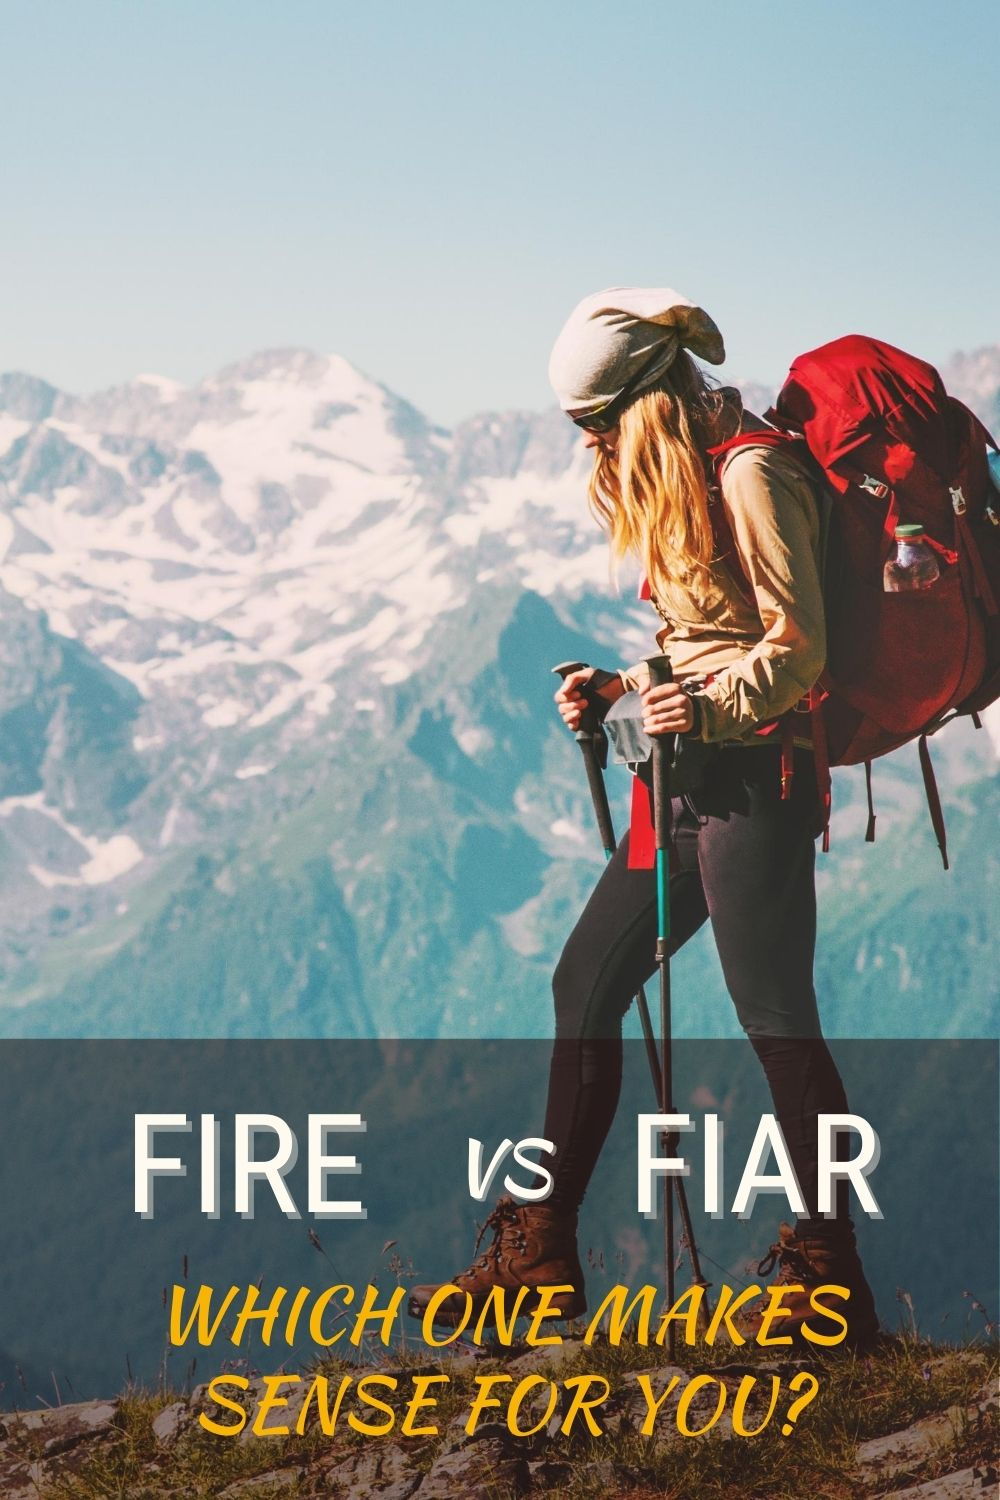 FIRE vs FIAR - Which One Makes Sense for You?